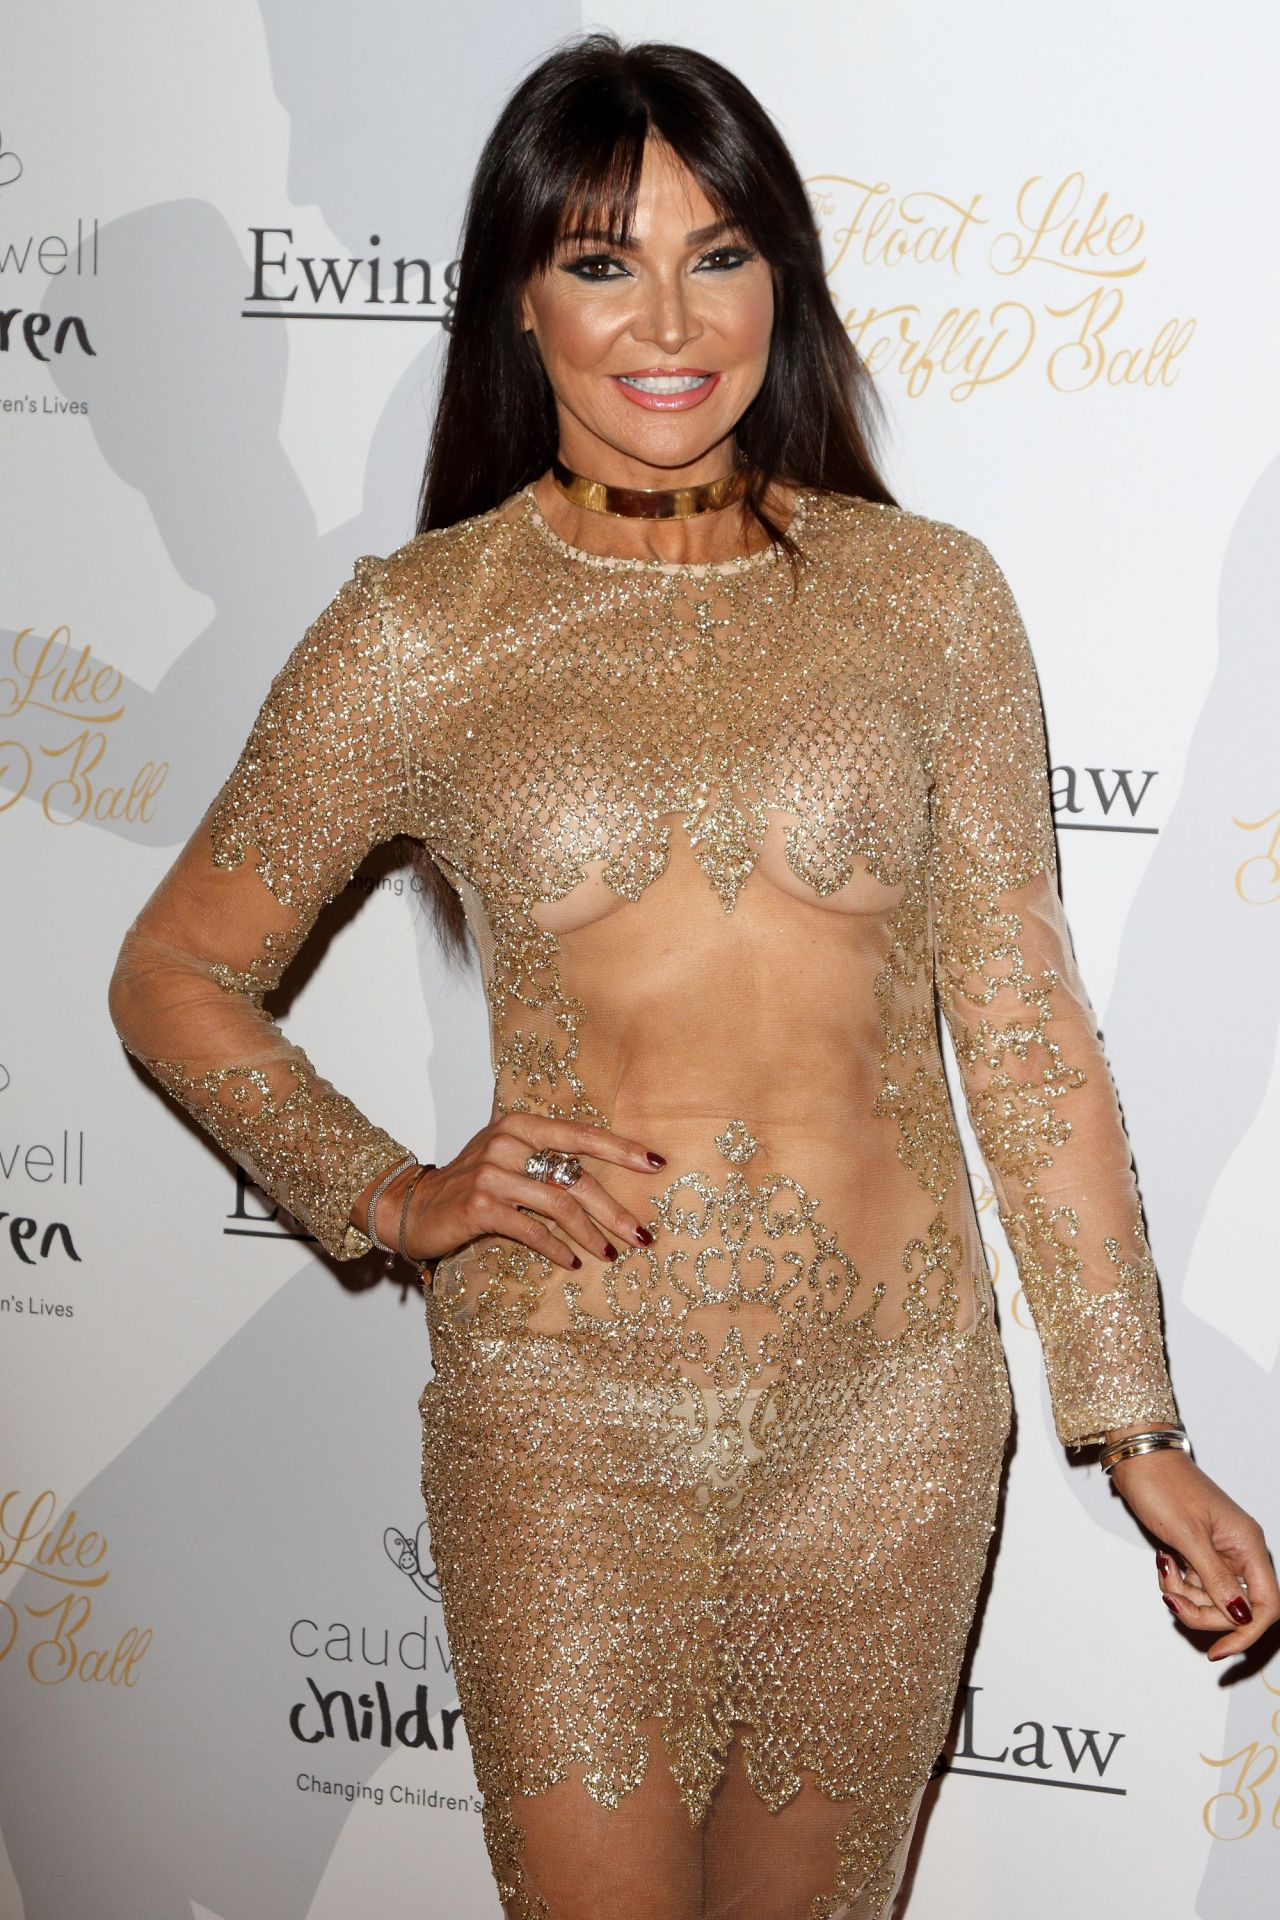 Forum on this topic: Sailor cook si swimsuit edition launch event in new york city, lizzie-cundy-see-through-2/